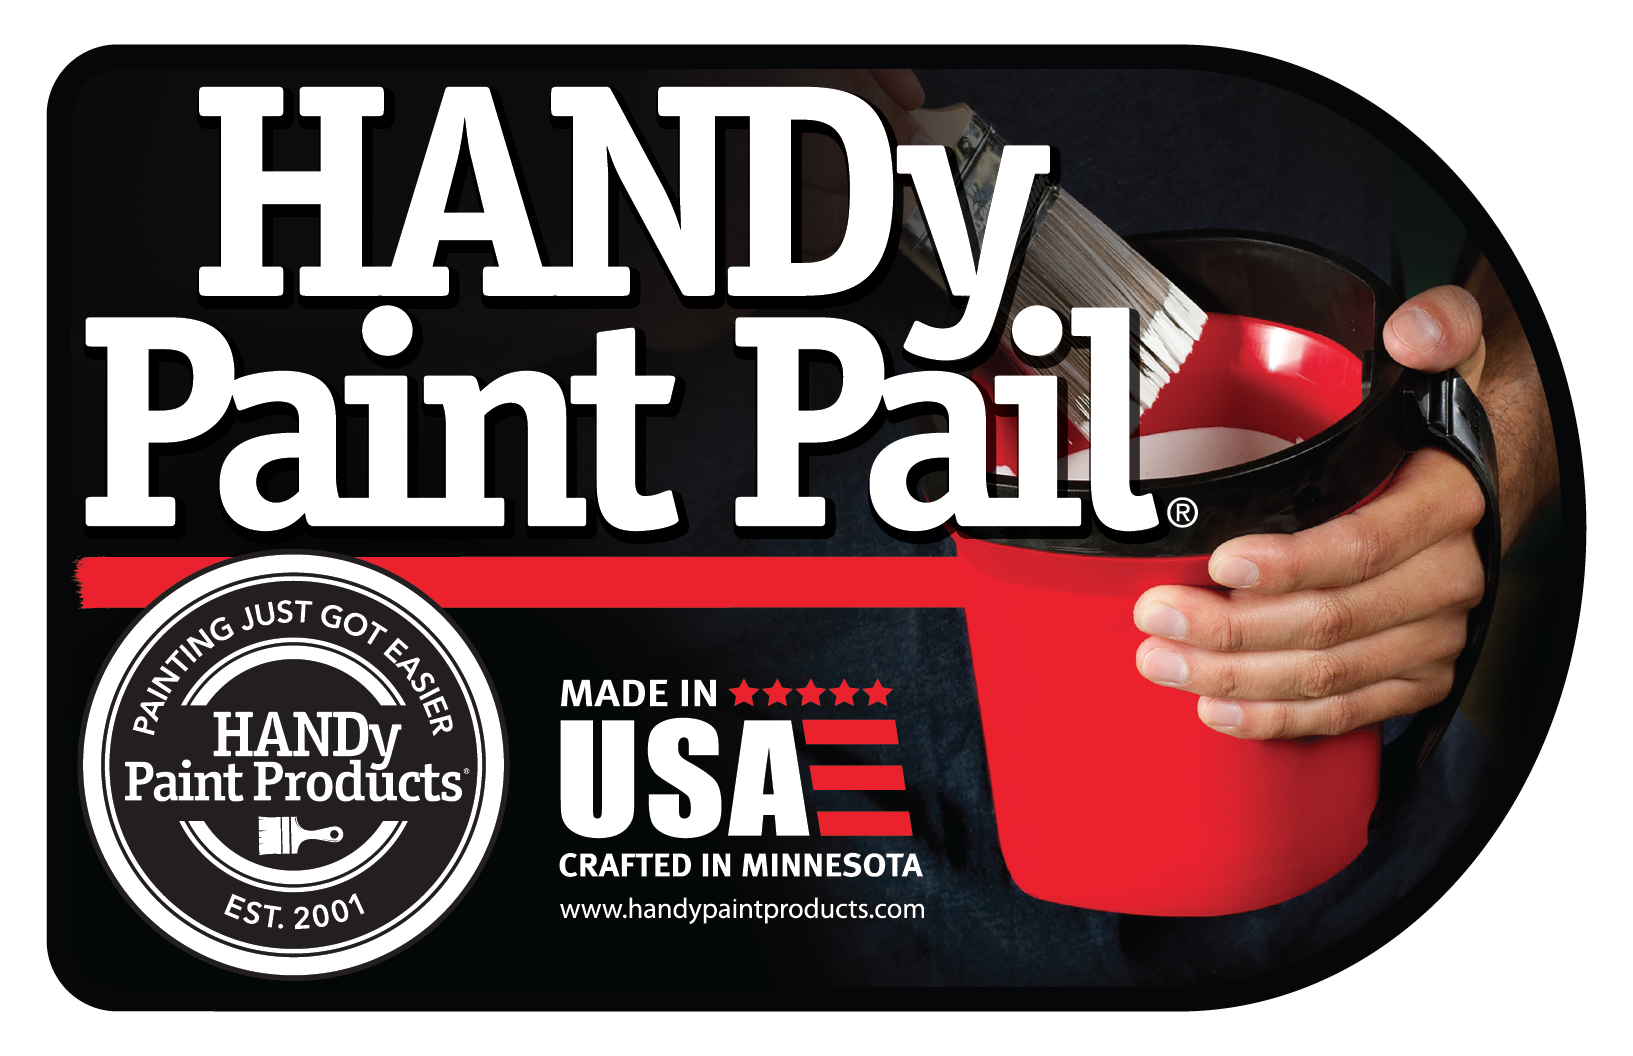 Give us a HAND and help design a new label for the HANDy Paint Pail